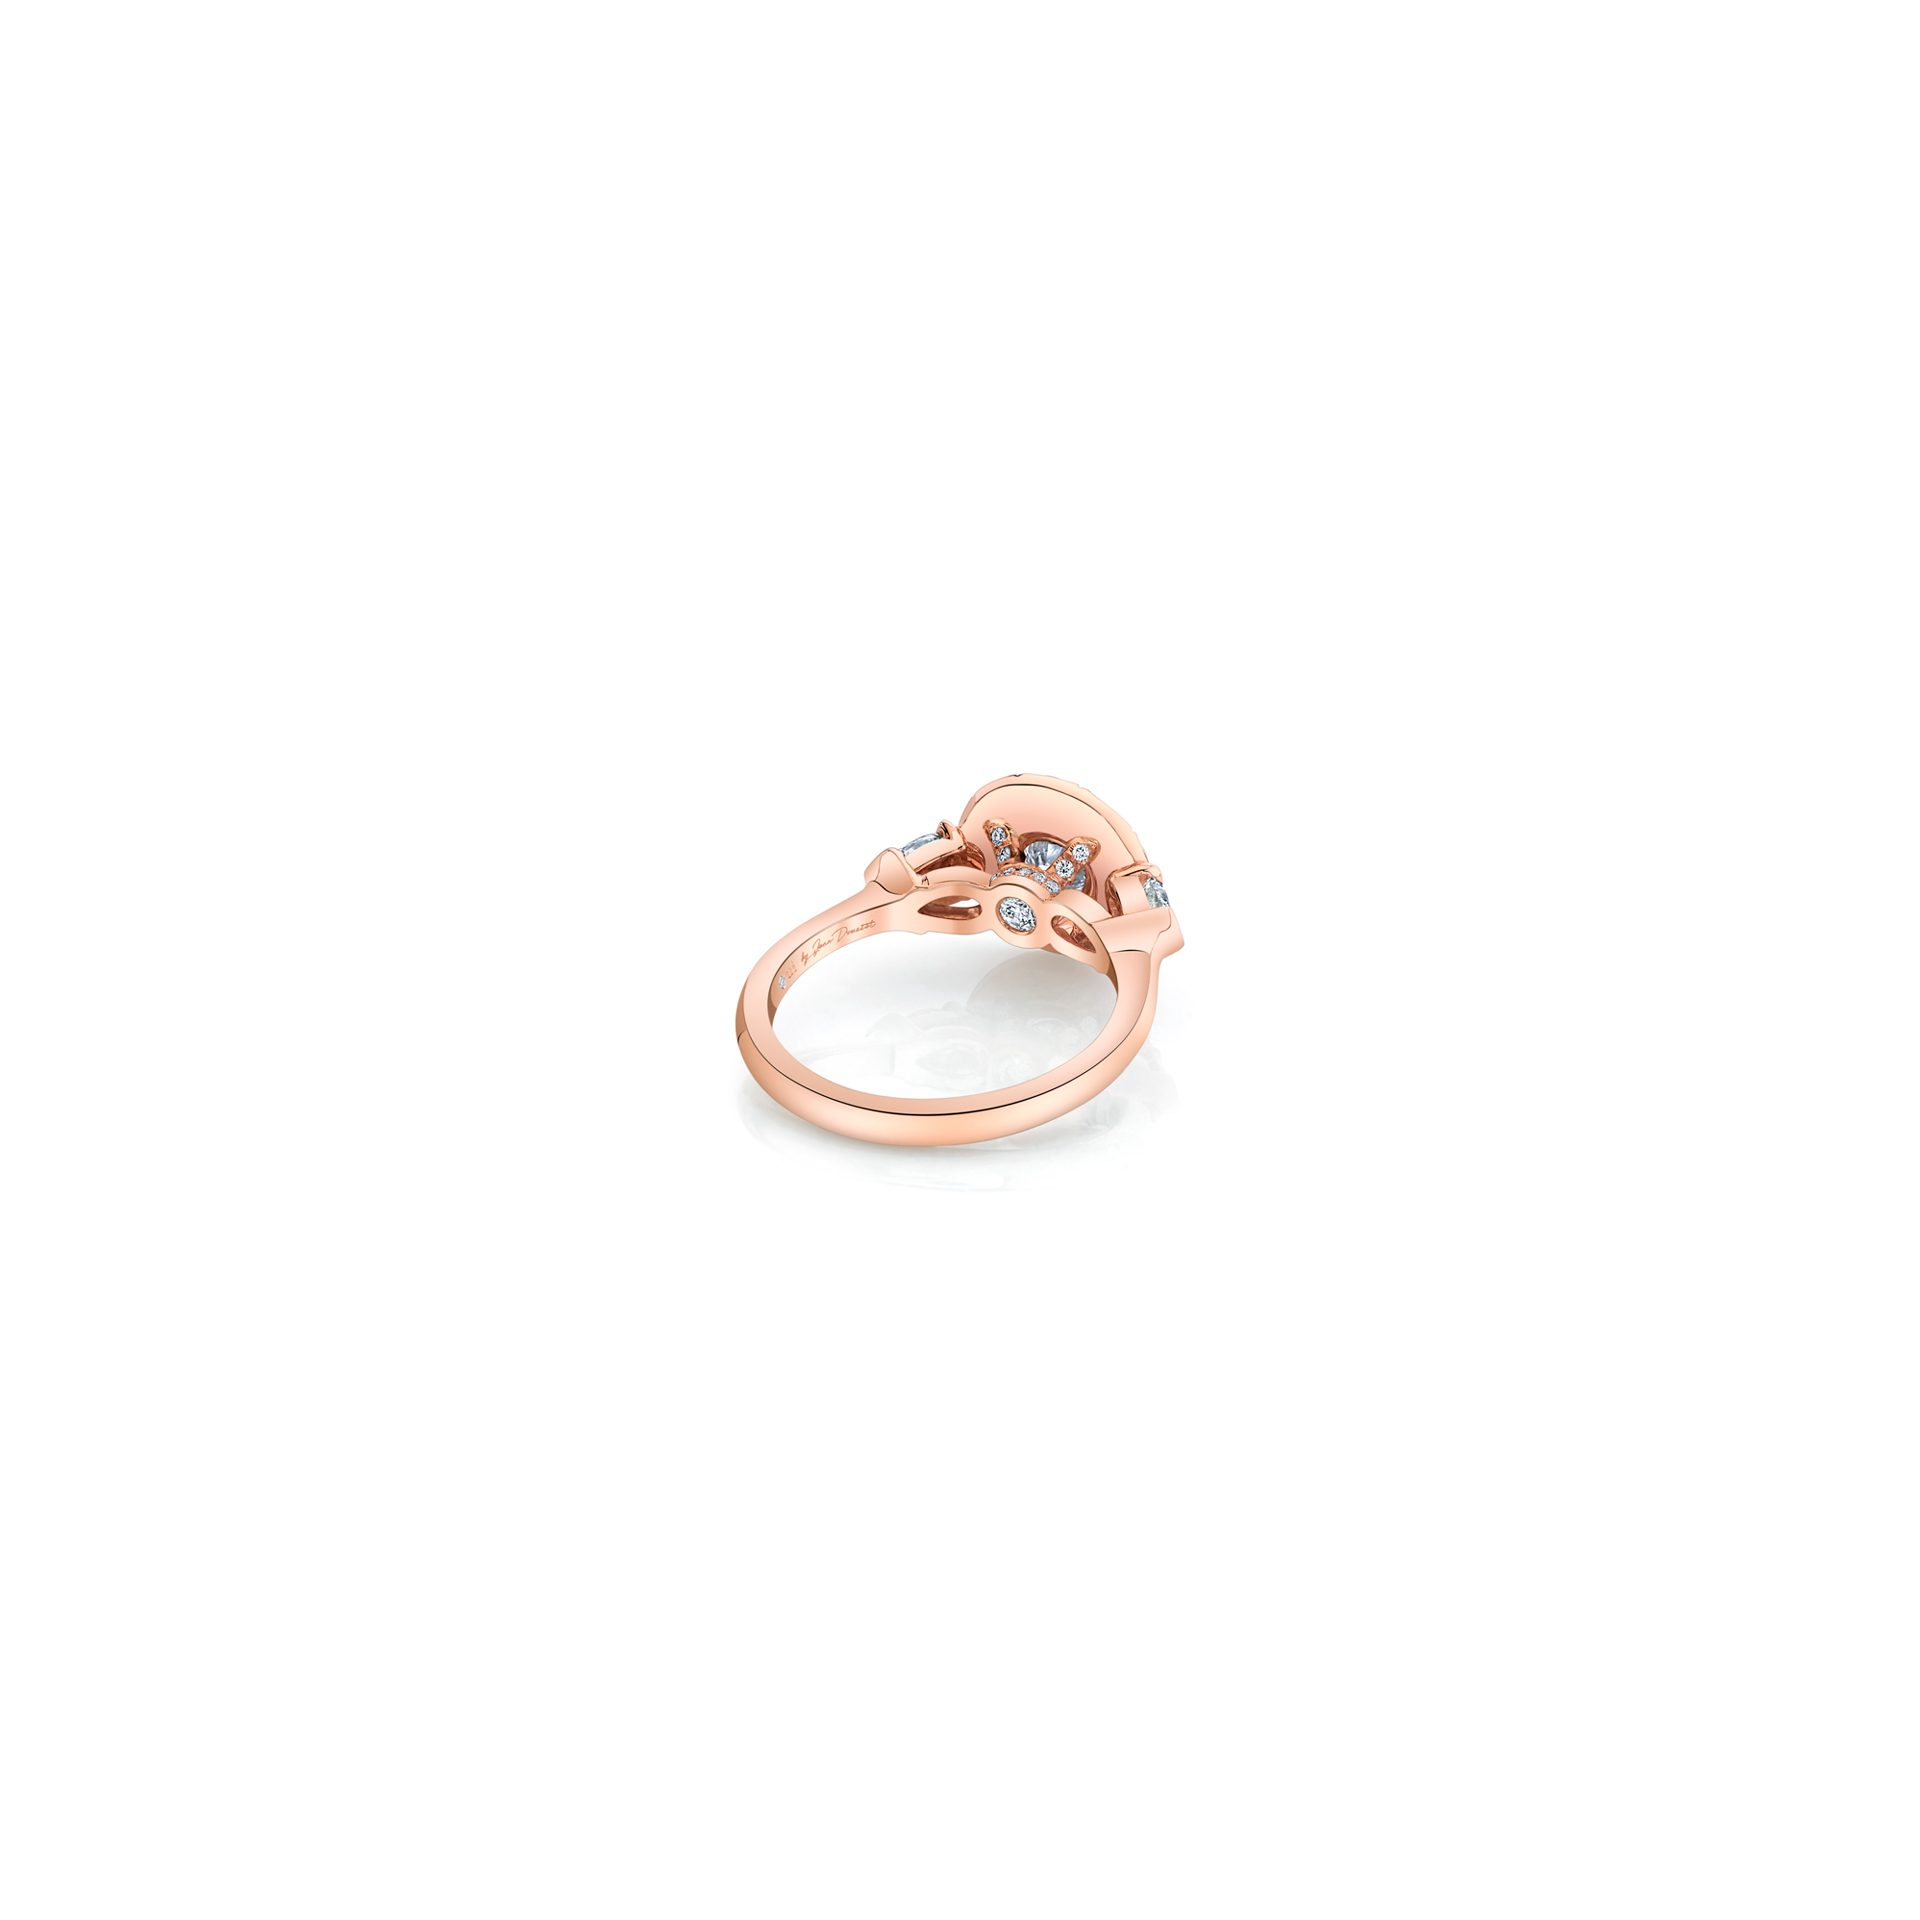 Clementine Round Brilliant Seamless Solitaire™ Three Stone Engagement Ring with pear-shaped diamond side stones in 18k Rose Gold Back View by Oui by Jean Dousset